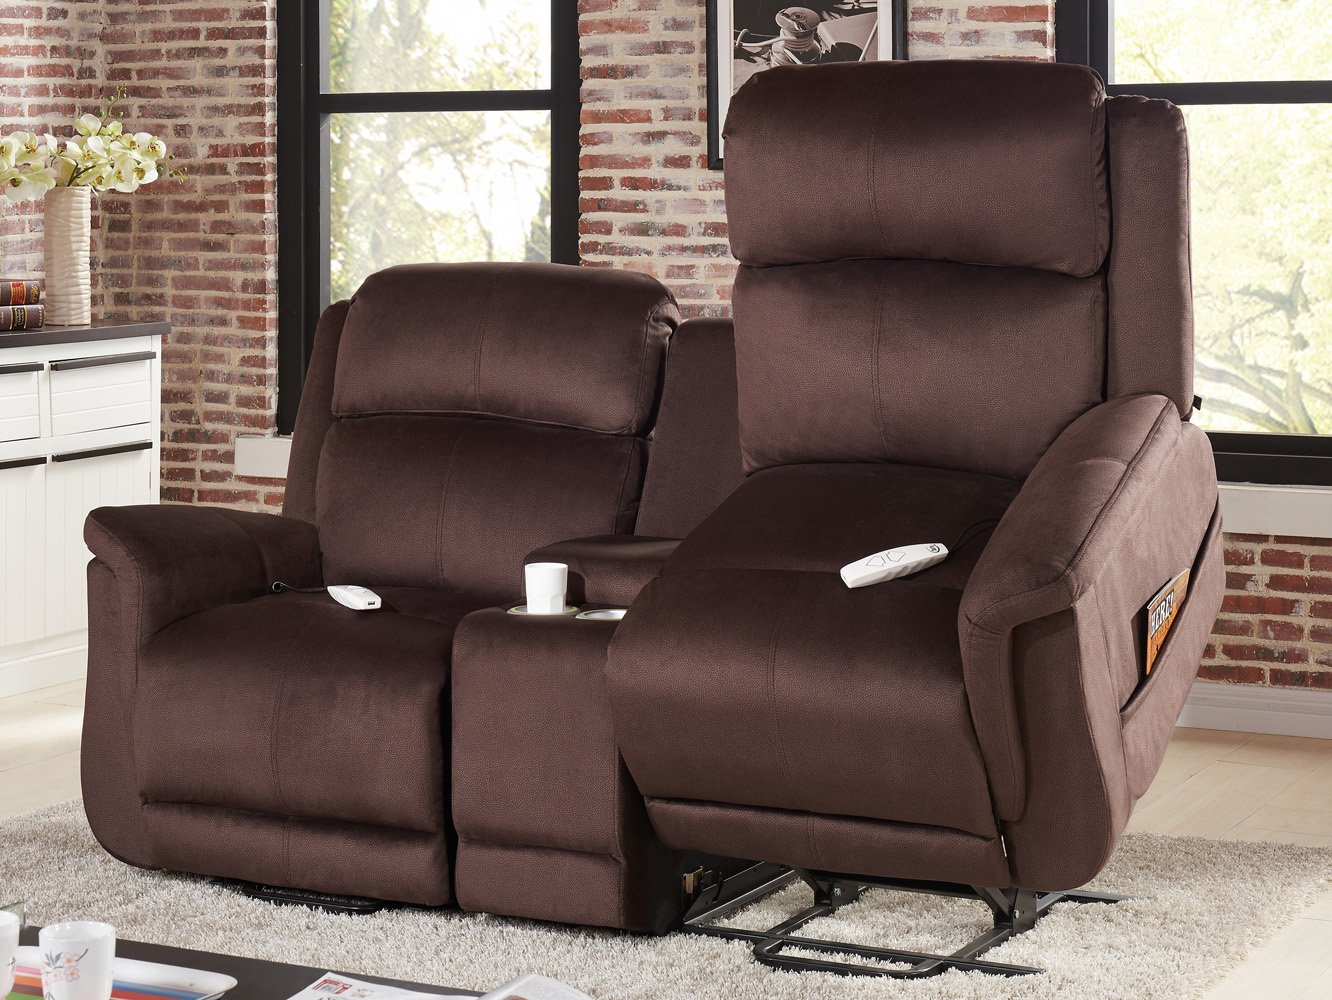 p large lift reclining living power ii chair furniture gallery config serta recliner room and recliners